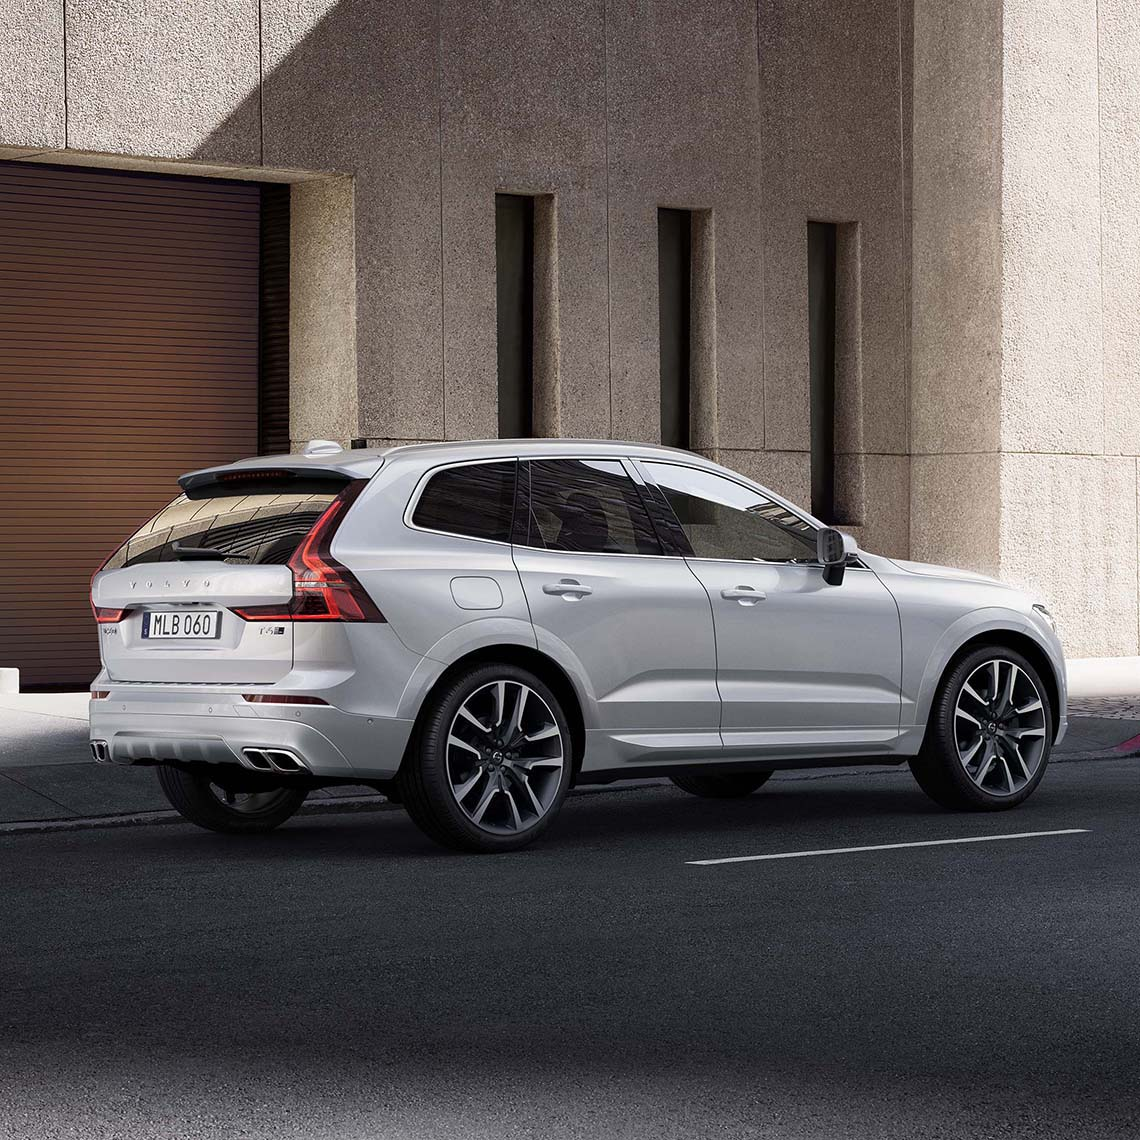 2018 XC60 Luxury SUV